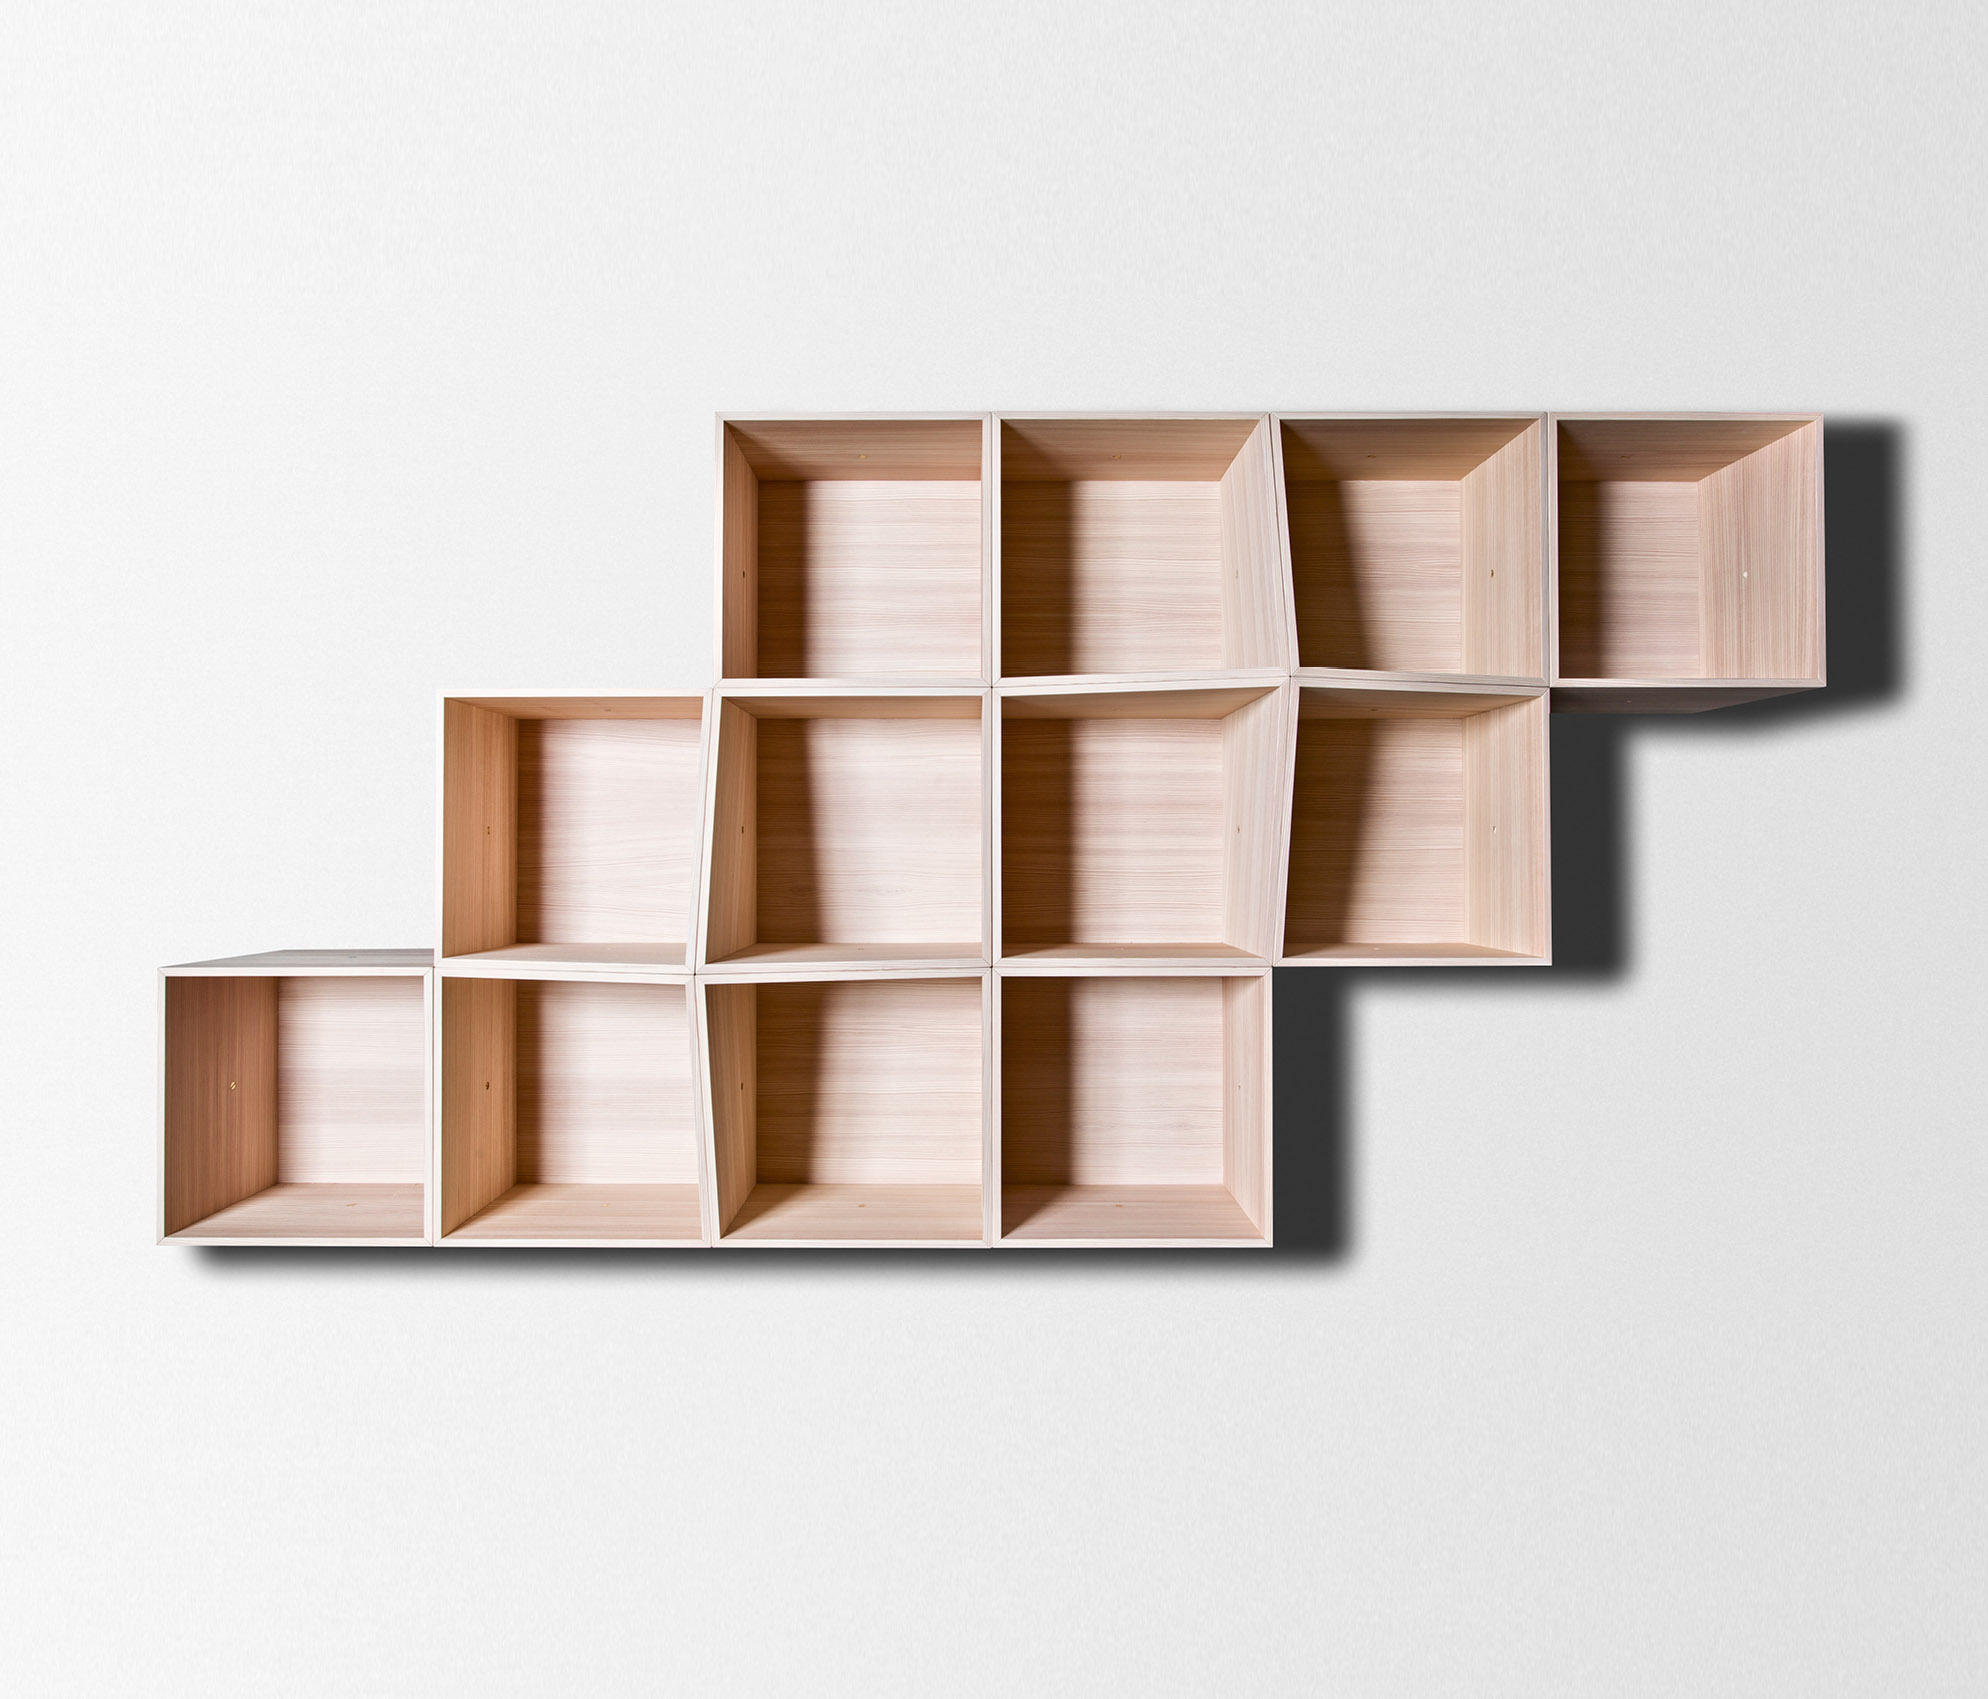 Fetching Edge Wall Shelving Modular System By Trentino Wood Design Wall Edge Wall Shelving Modular System Wall Shelves From Trentino Wood Wooden Shelves To Hang On Wall Wood Shelves On Brick Wall interior Wooden Shelves On Wall